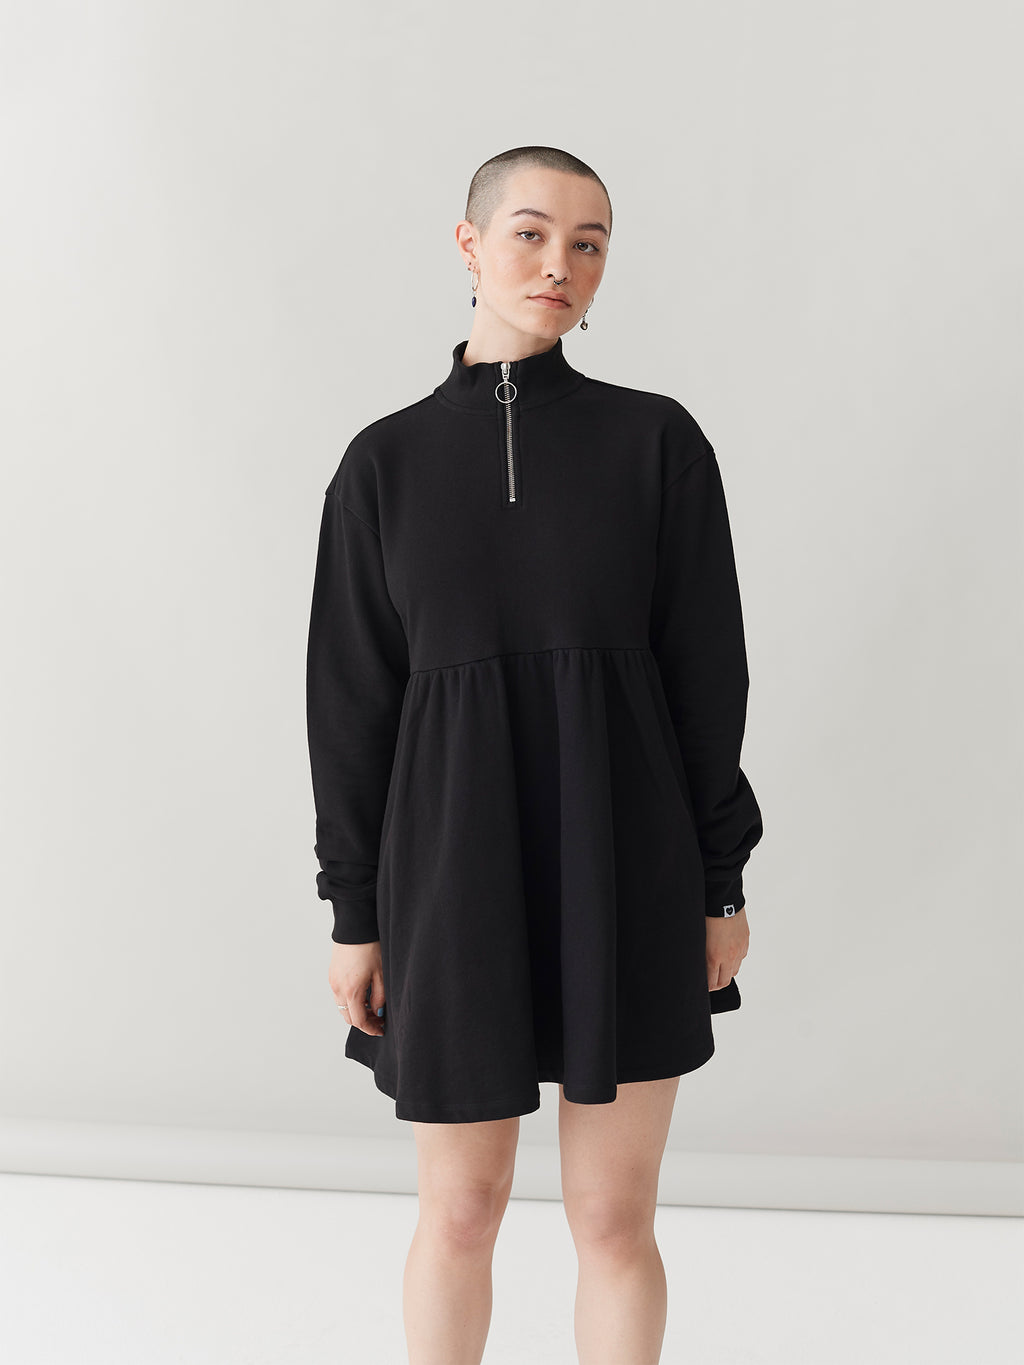 LO Black Sally Sweater Dress